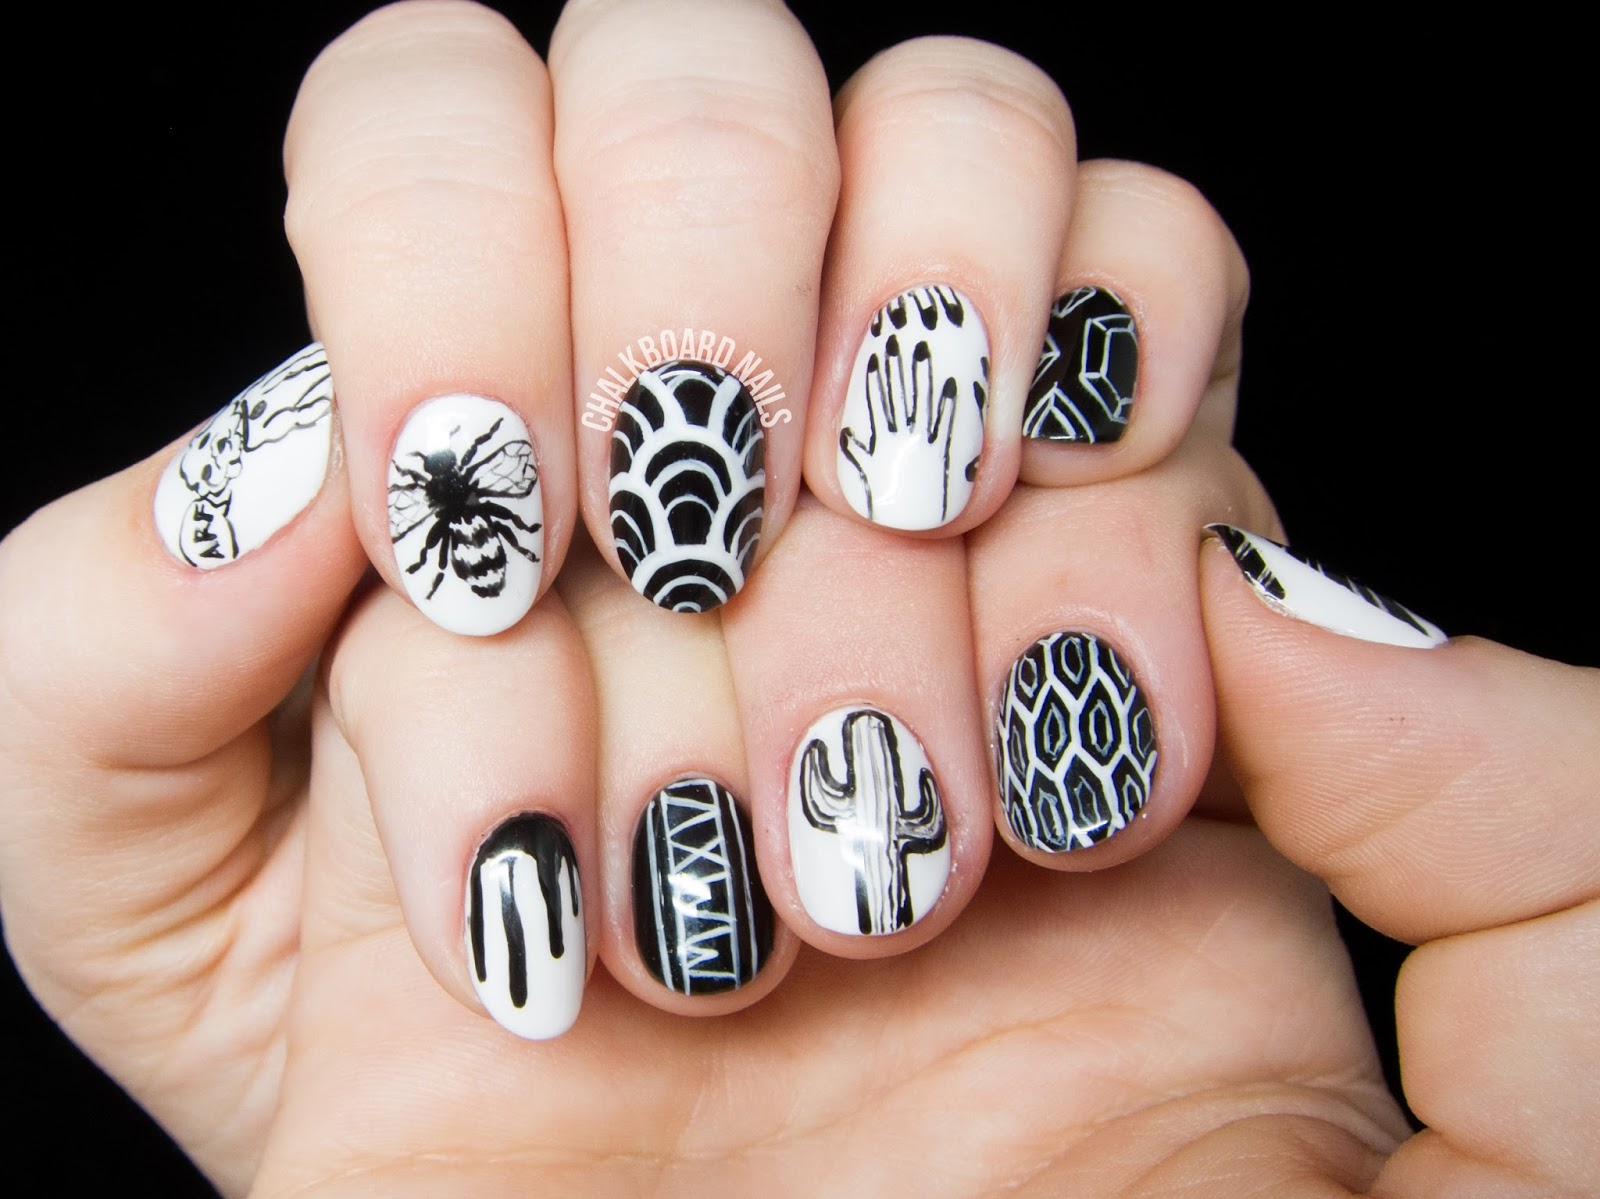 Personalized Black and White Freehand Nail Art